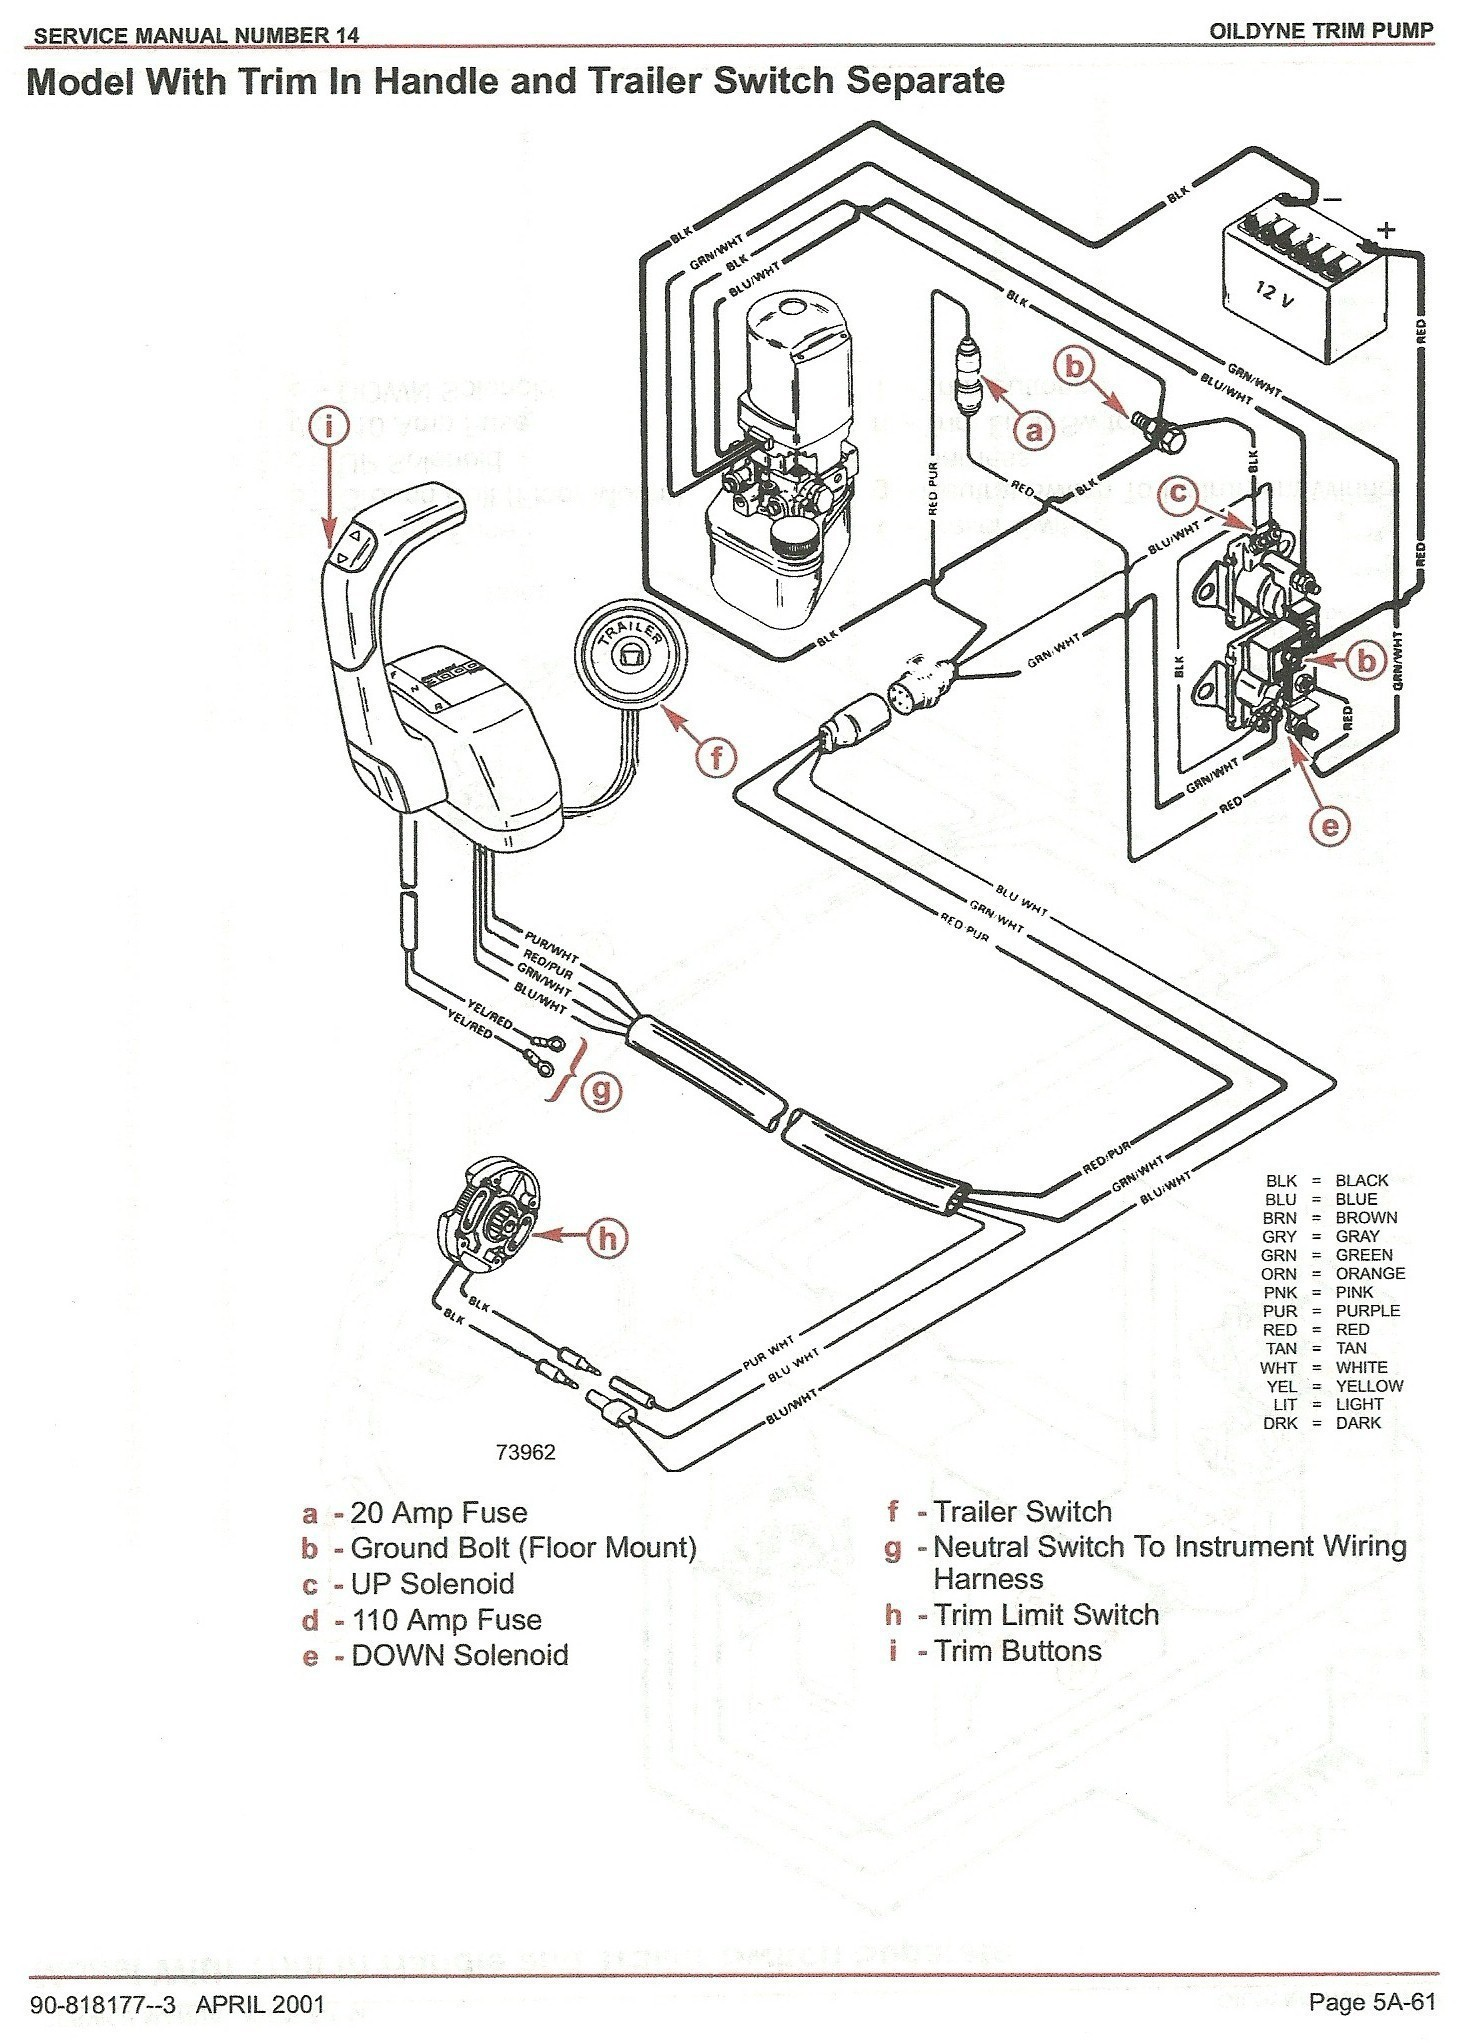 hight resolution of evinrude trim gauge wiring diagram wiring diagram for you johnson 150 outboard motor diagram tilt and trim switch wiring diagram